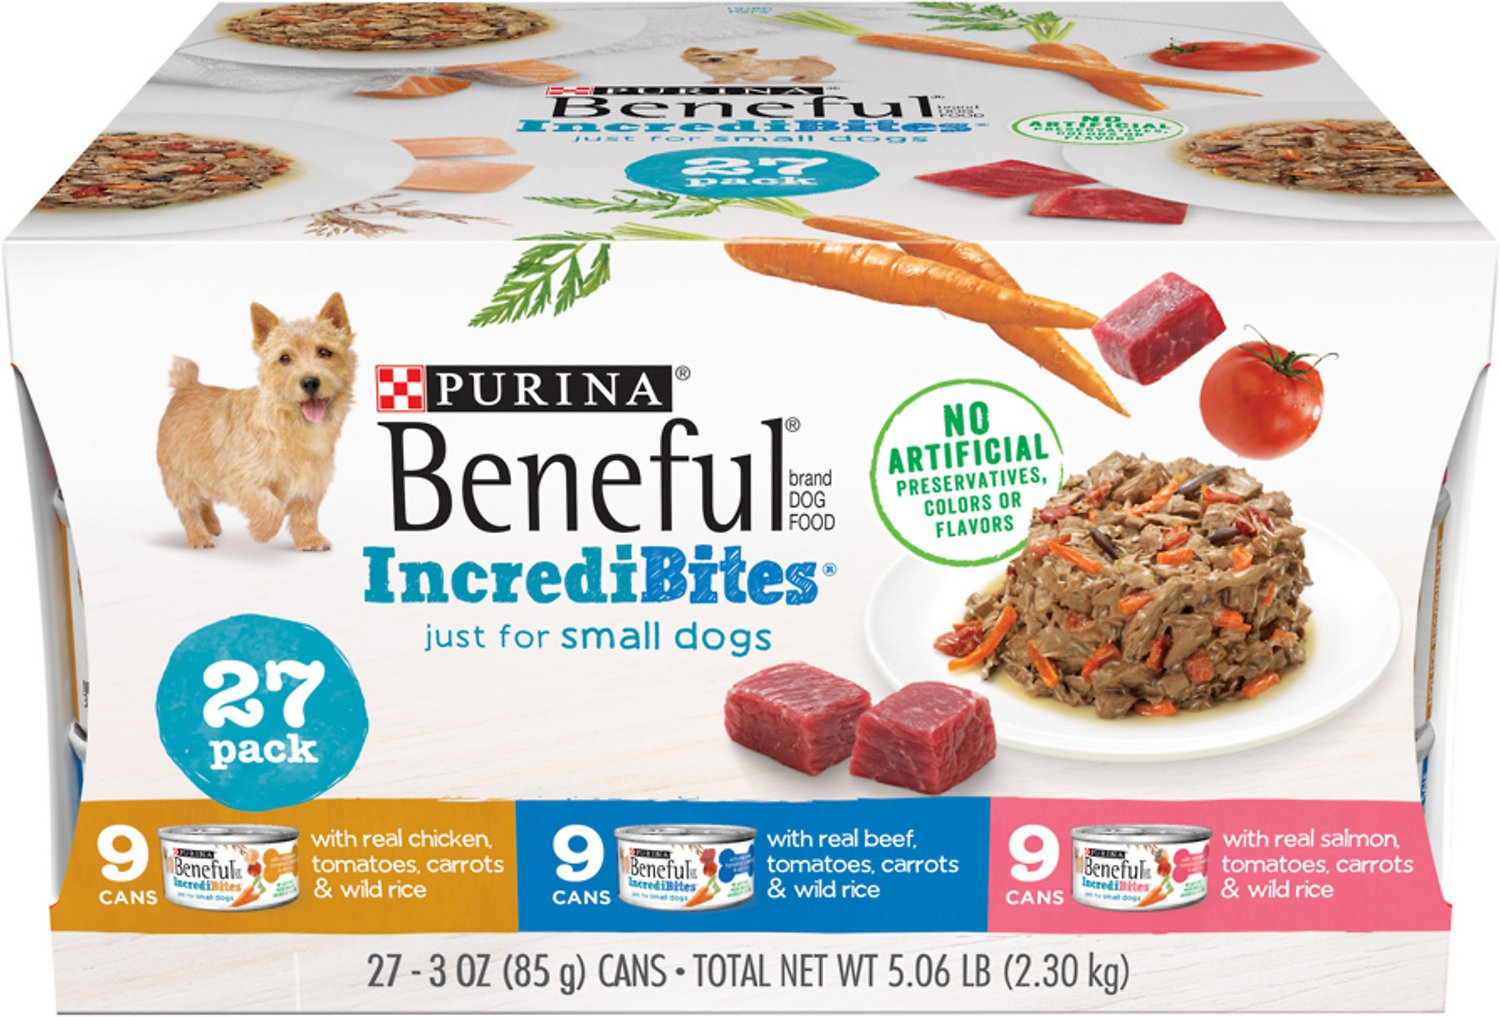 Purina Beneful Incredibites Variety Pack Canned Dog Food 3 Oz Case